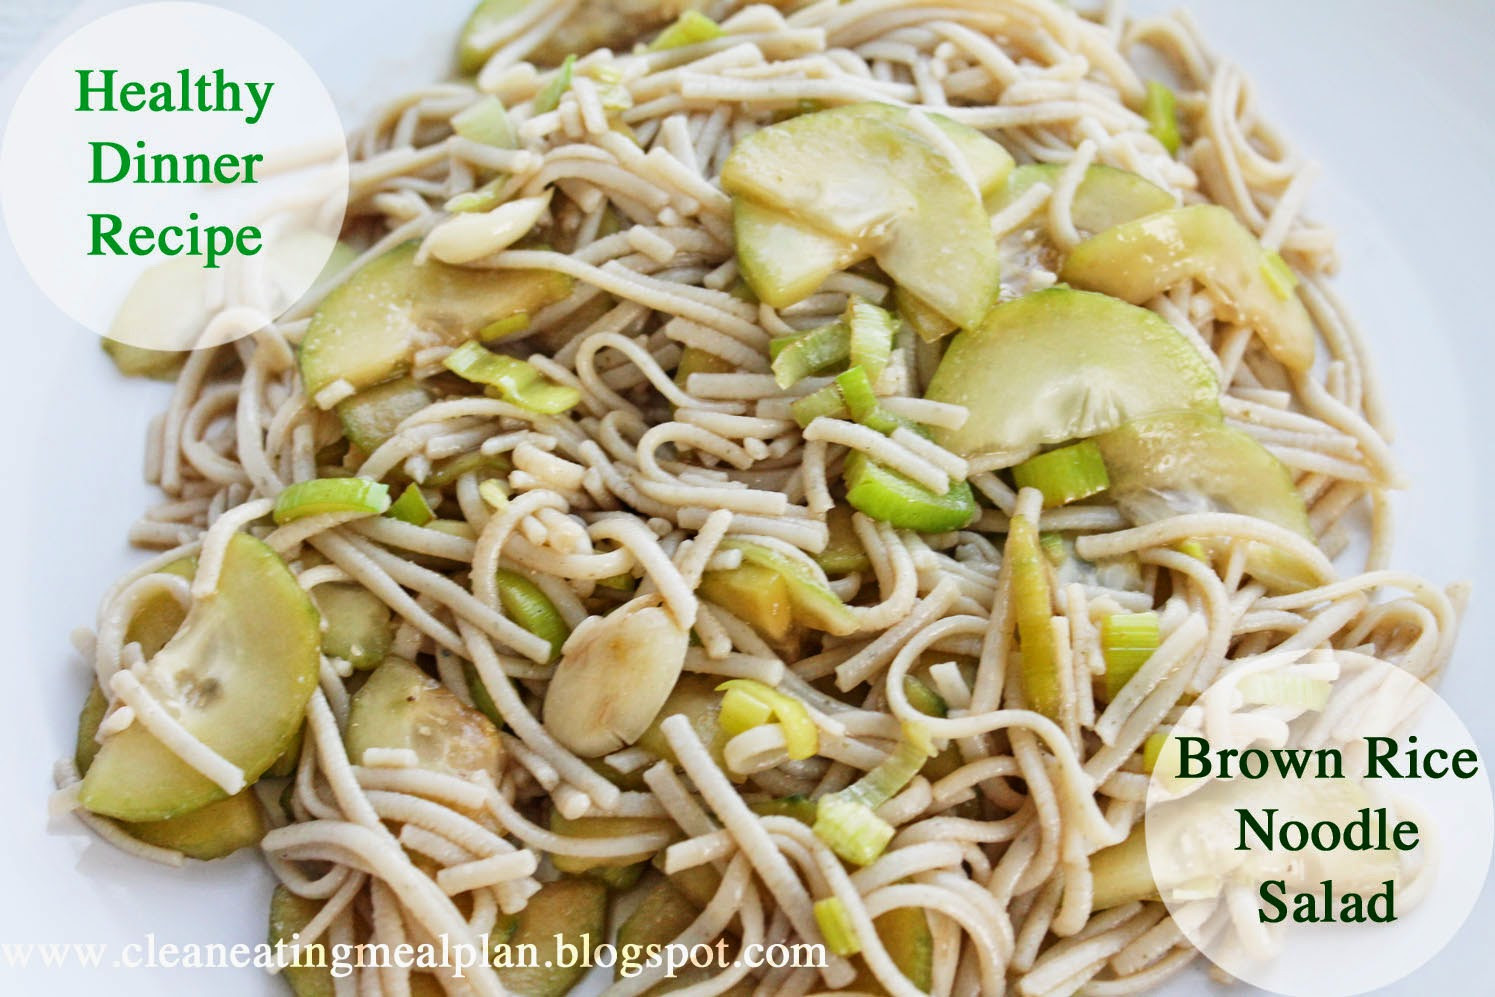 Are Rice Noodles Healthy  Healthy Dinner Recipe Brown Rice Noodle Salad